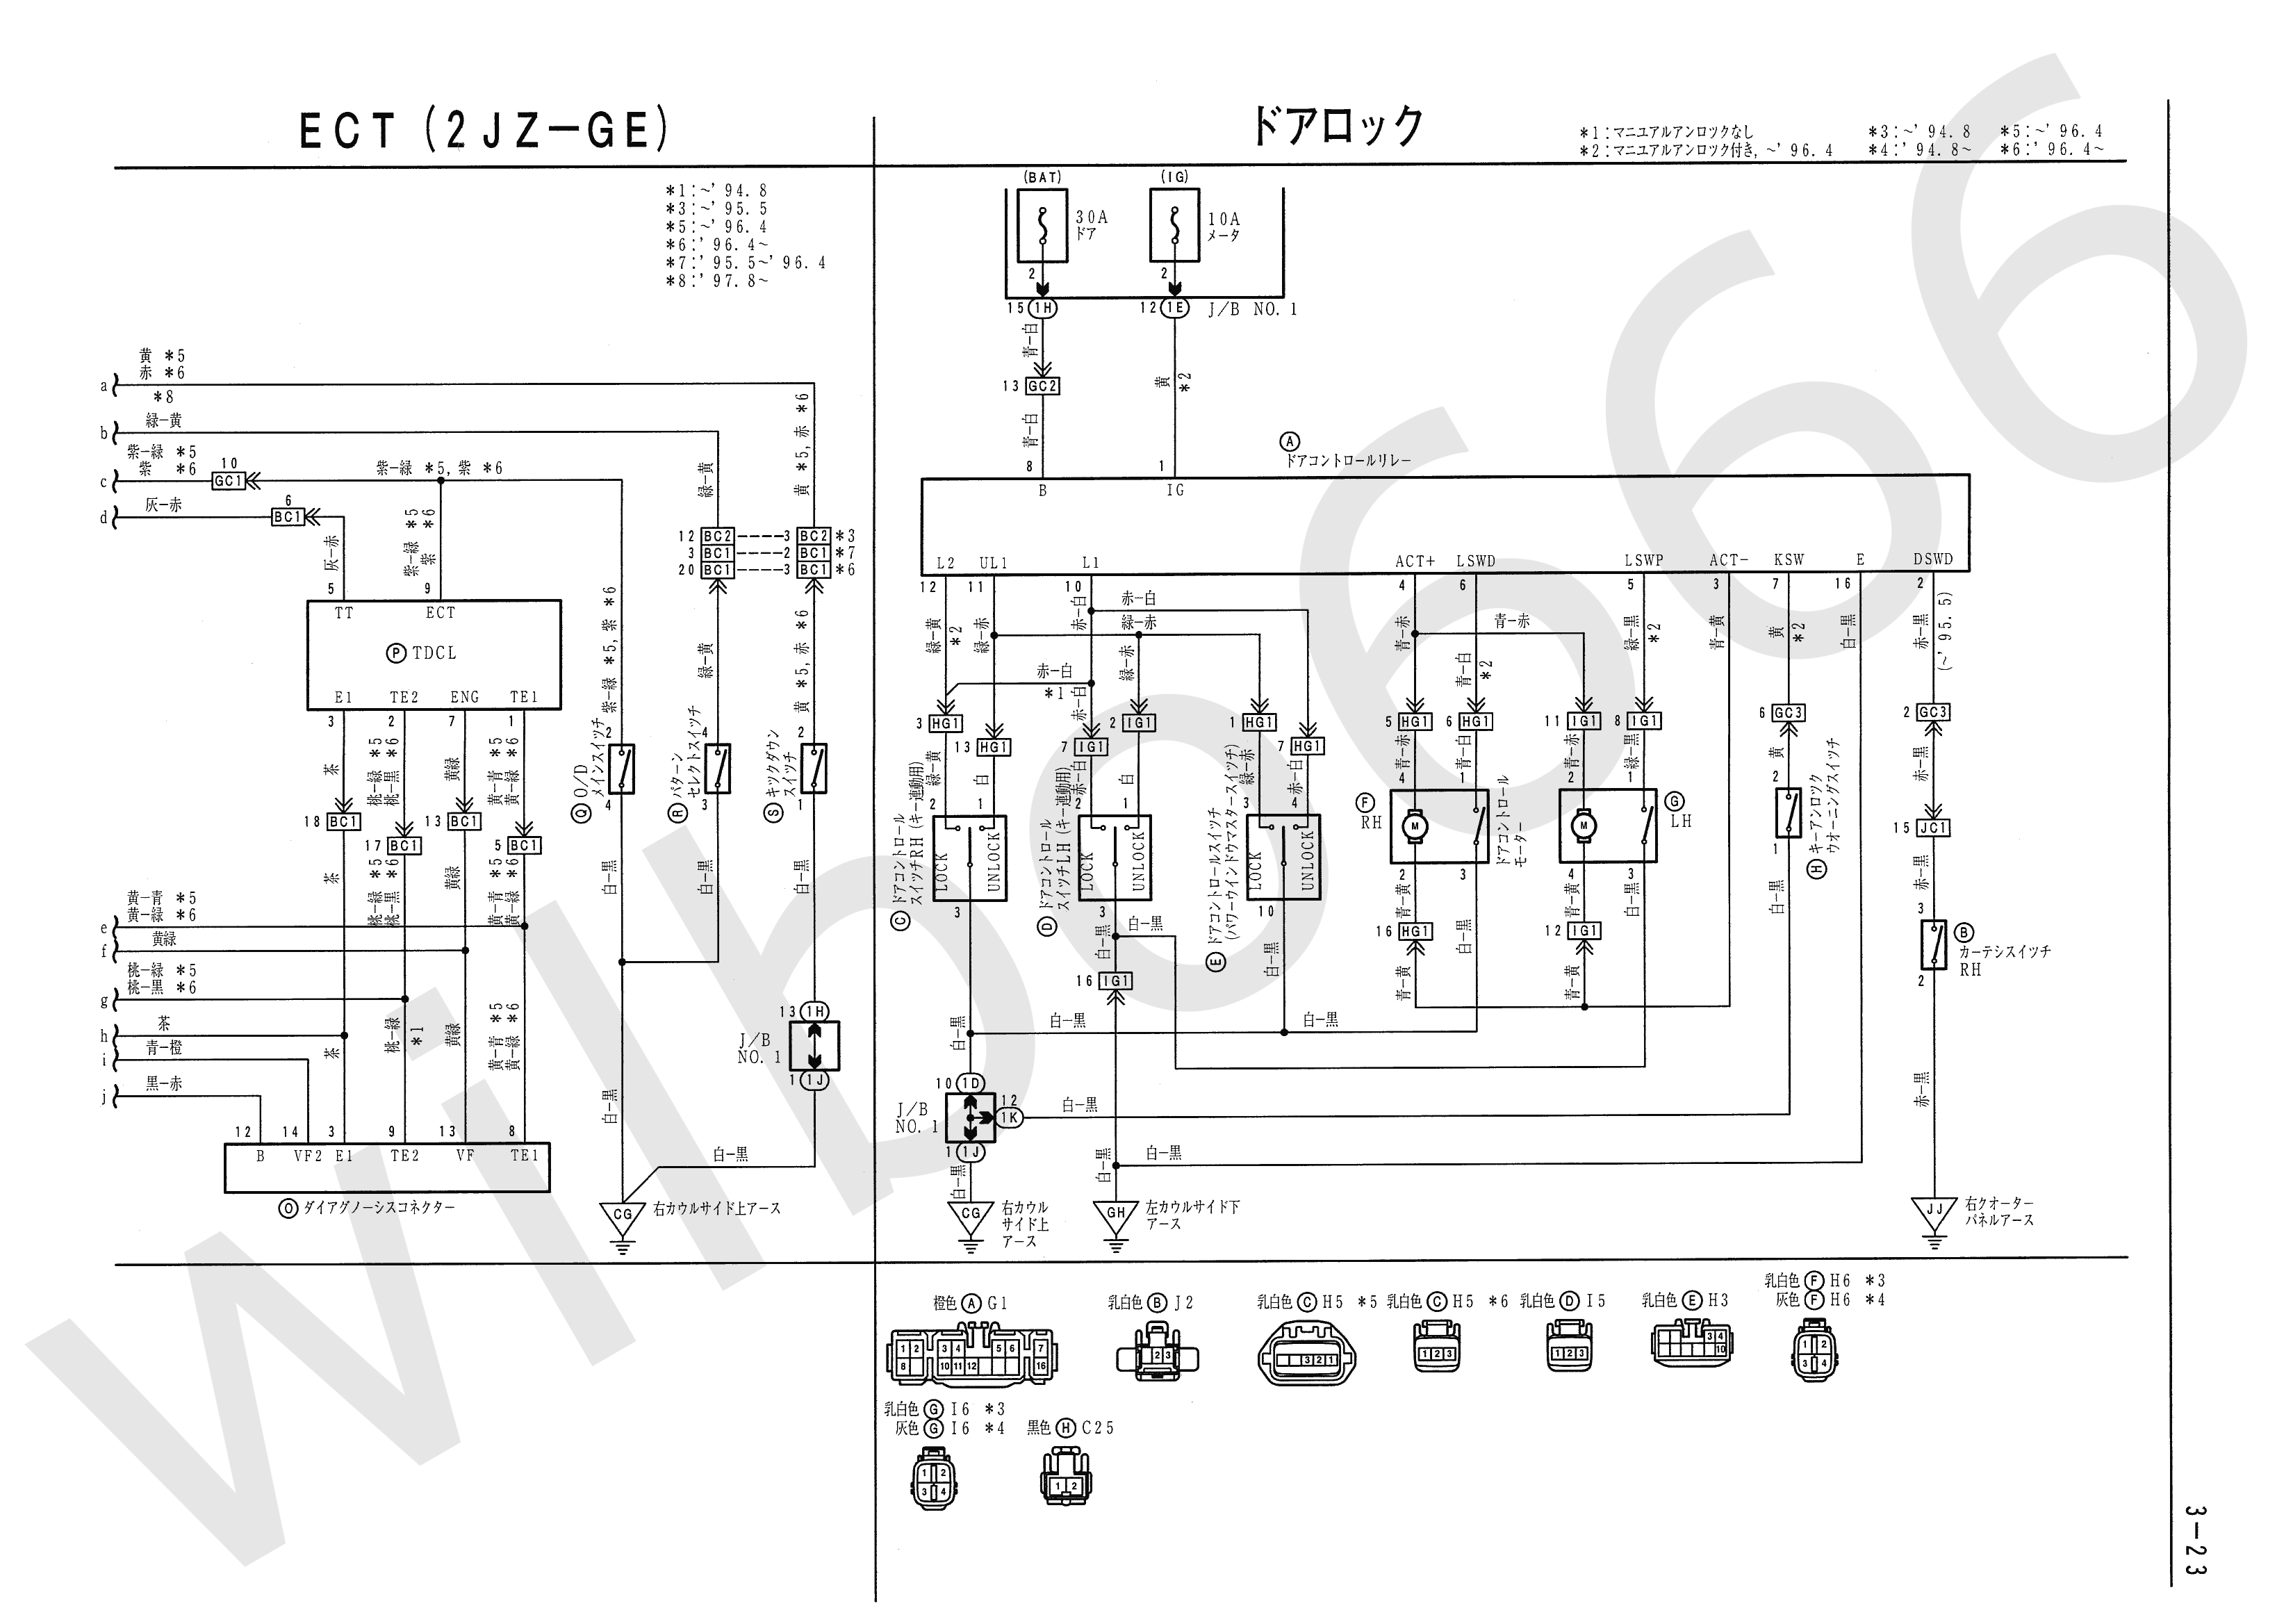 2jz Ge Engine Diagram Wiring Will Be A Thing Vg30e Wilbo666 Jza80 Supra Gte Import